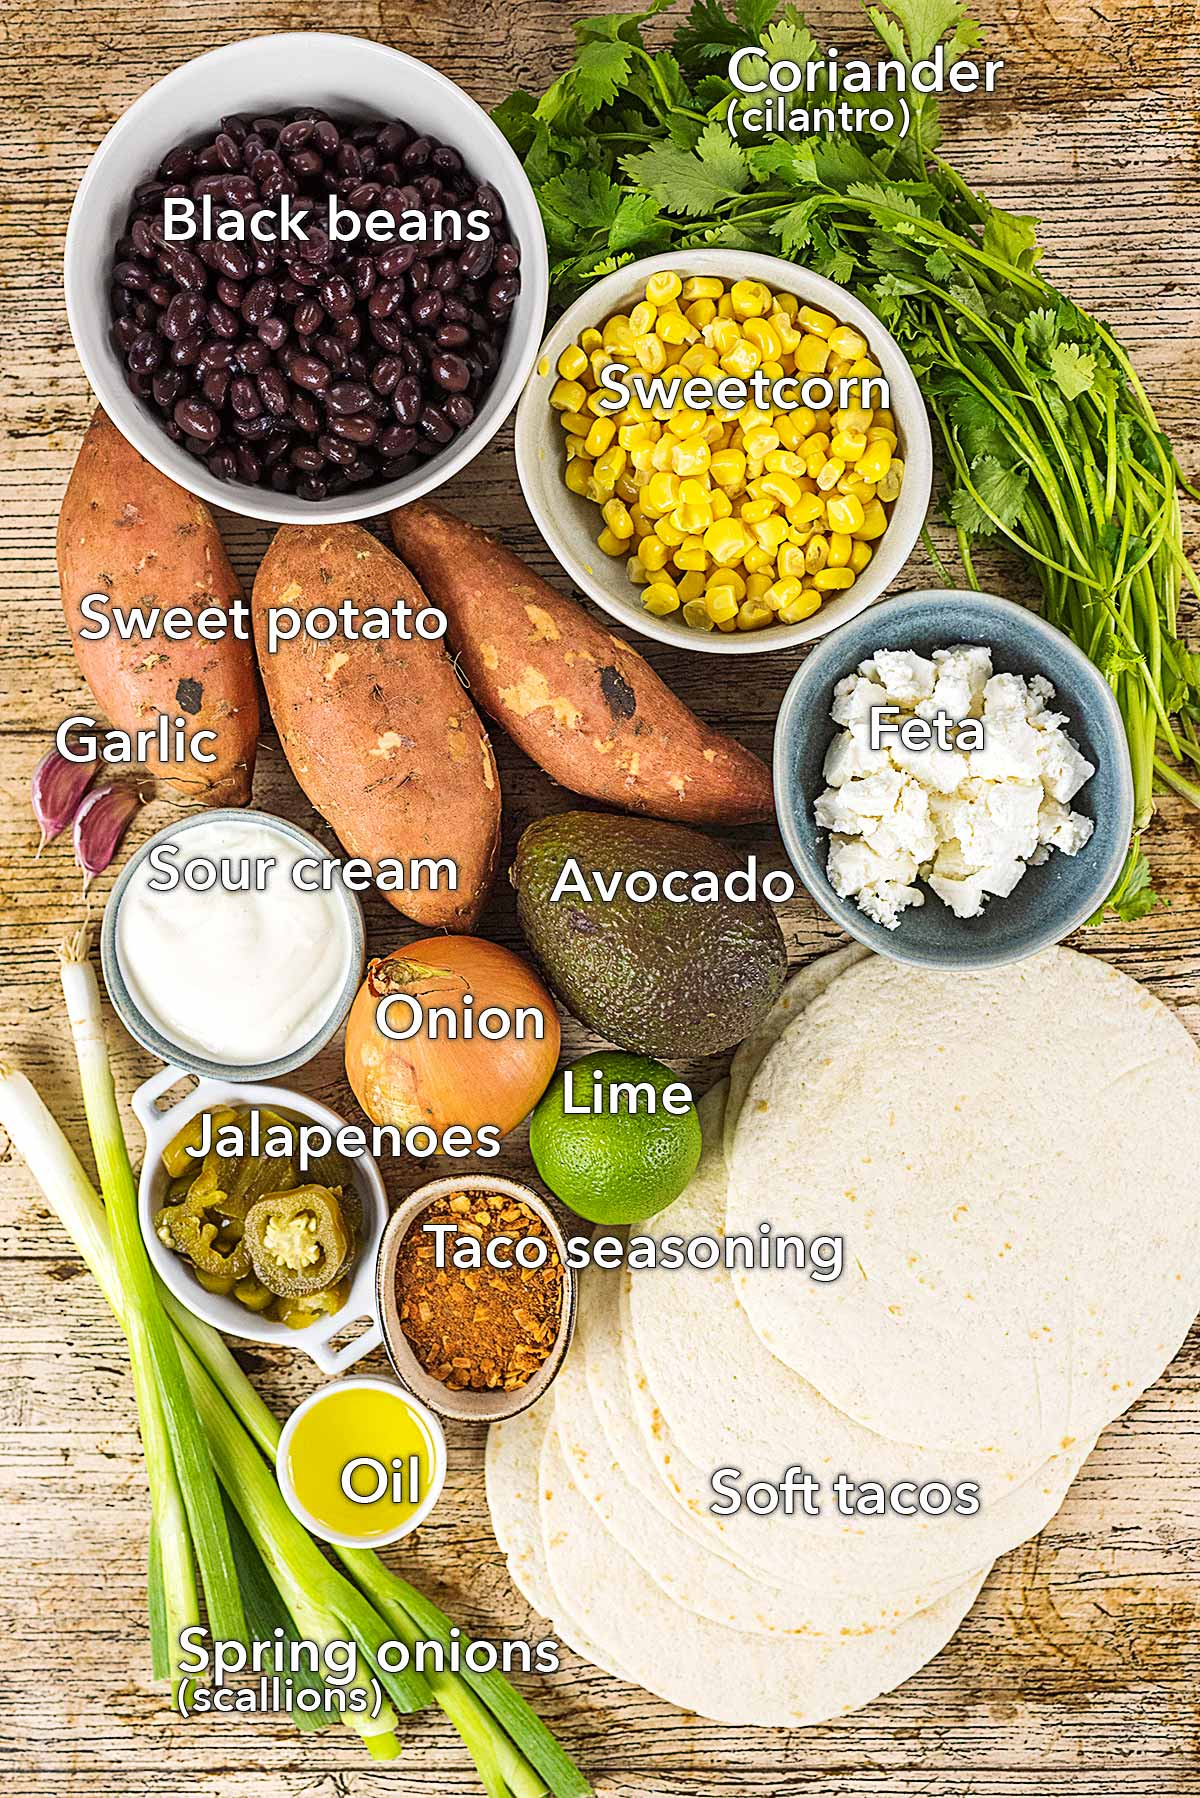 Ingredients needed to make this recipe laid out on a wooden surface.